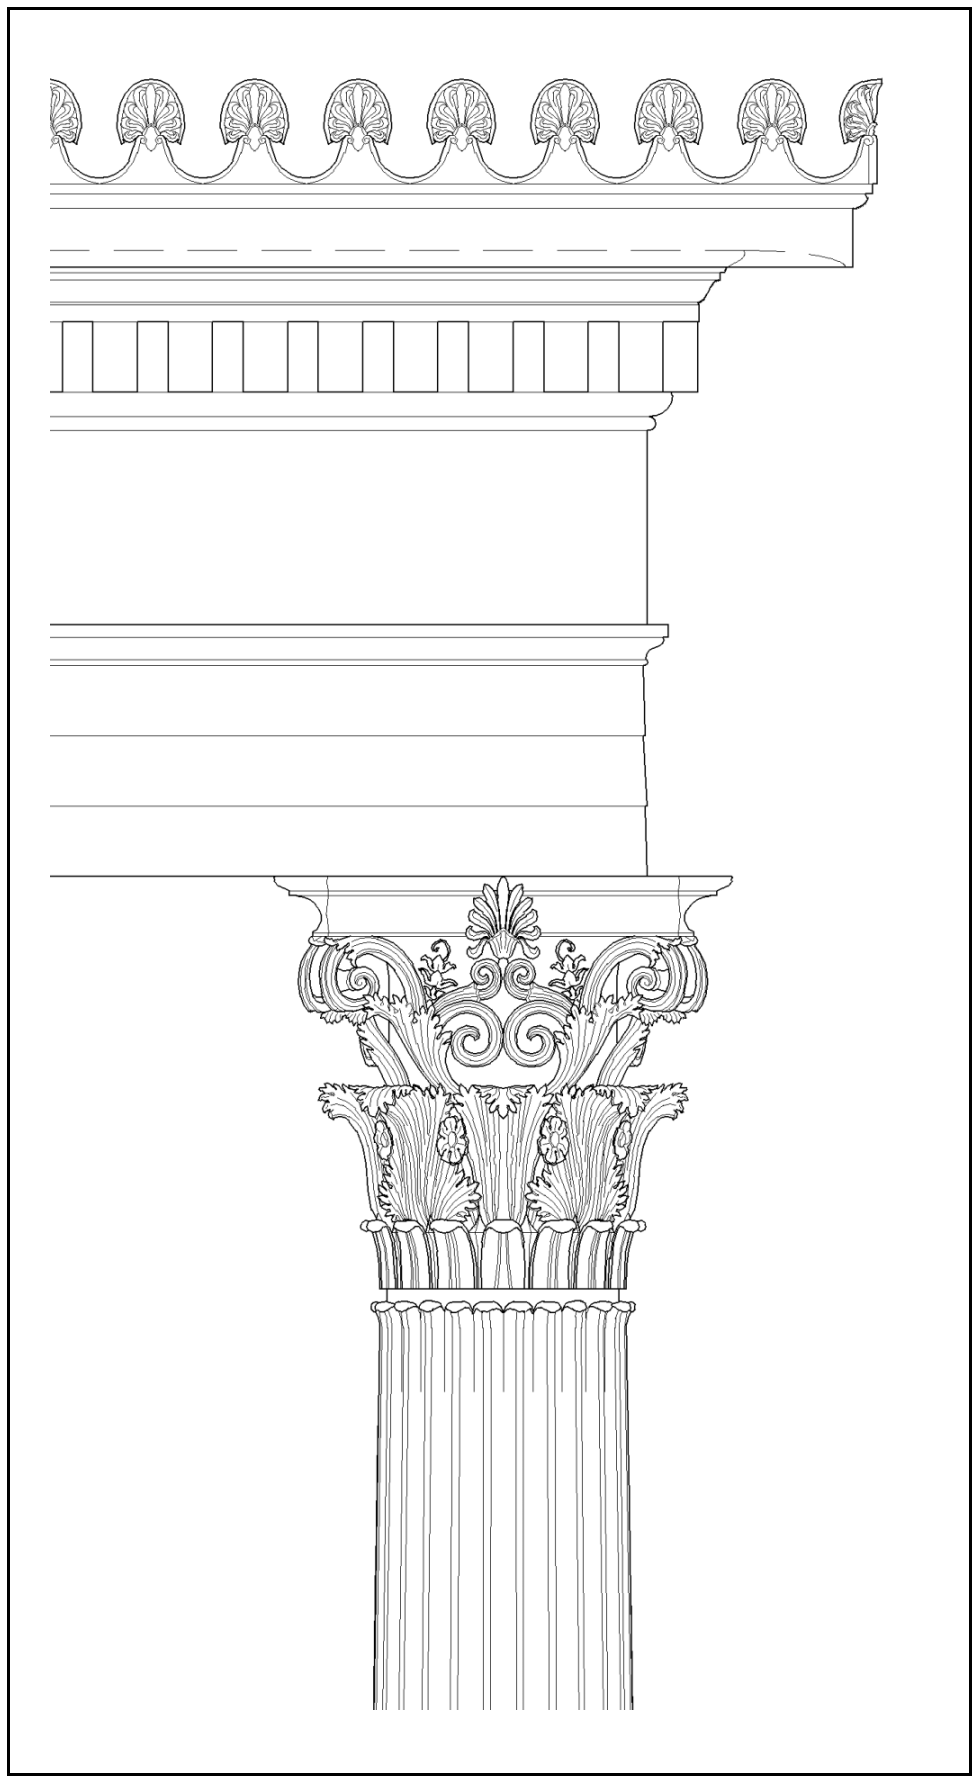 Column Capital and Entablature